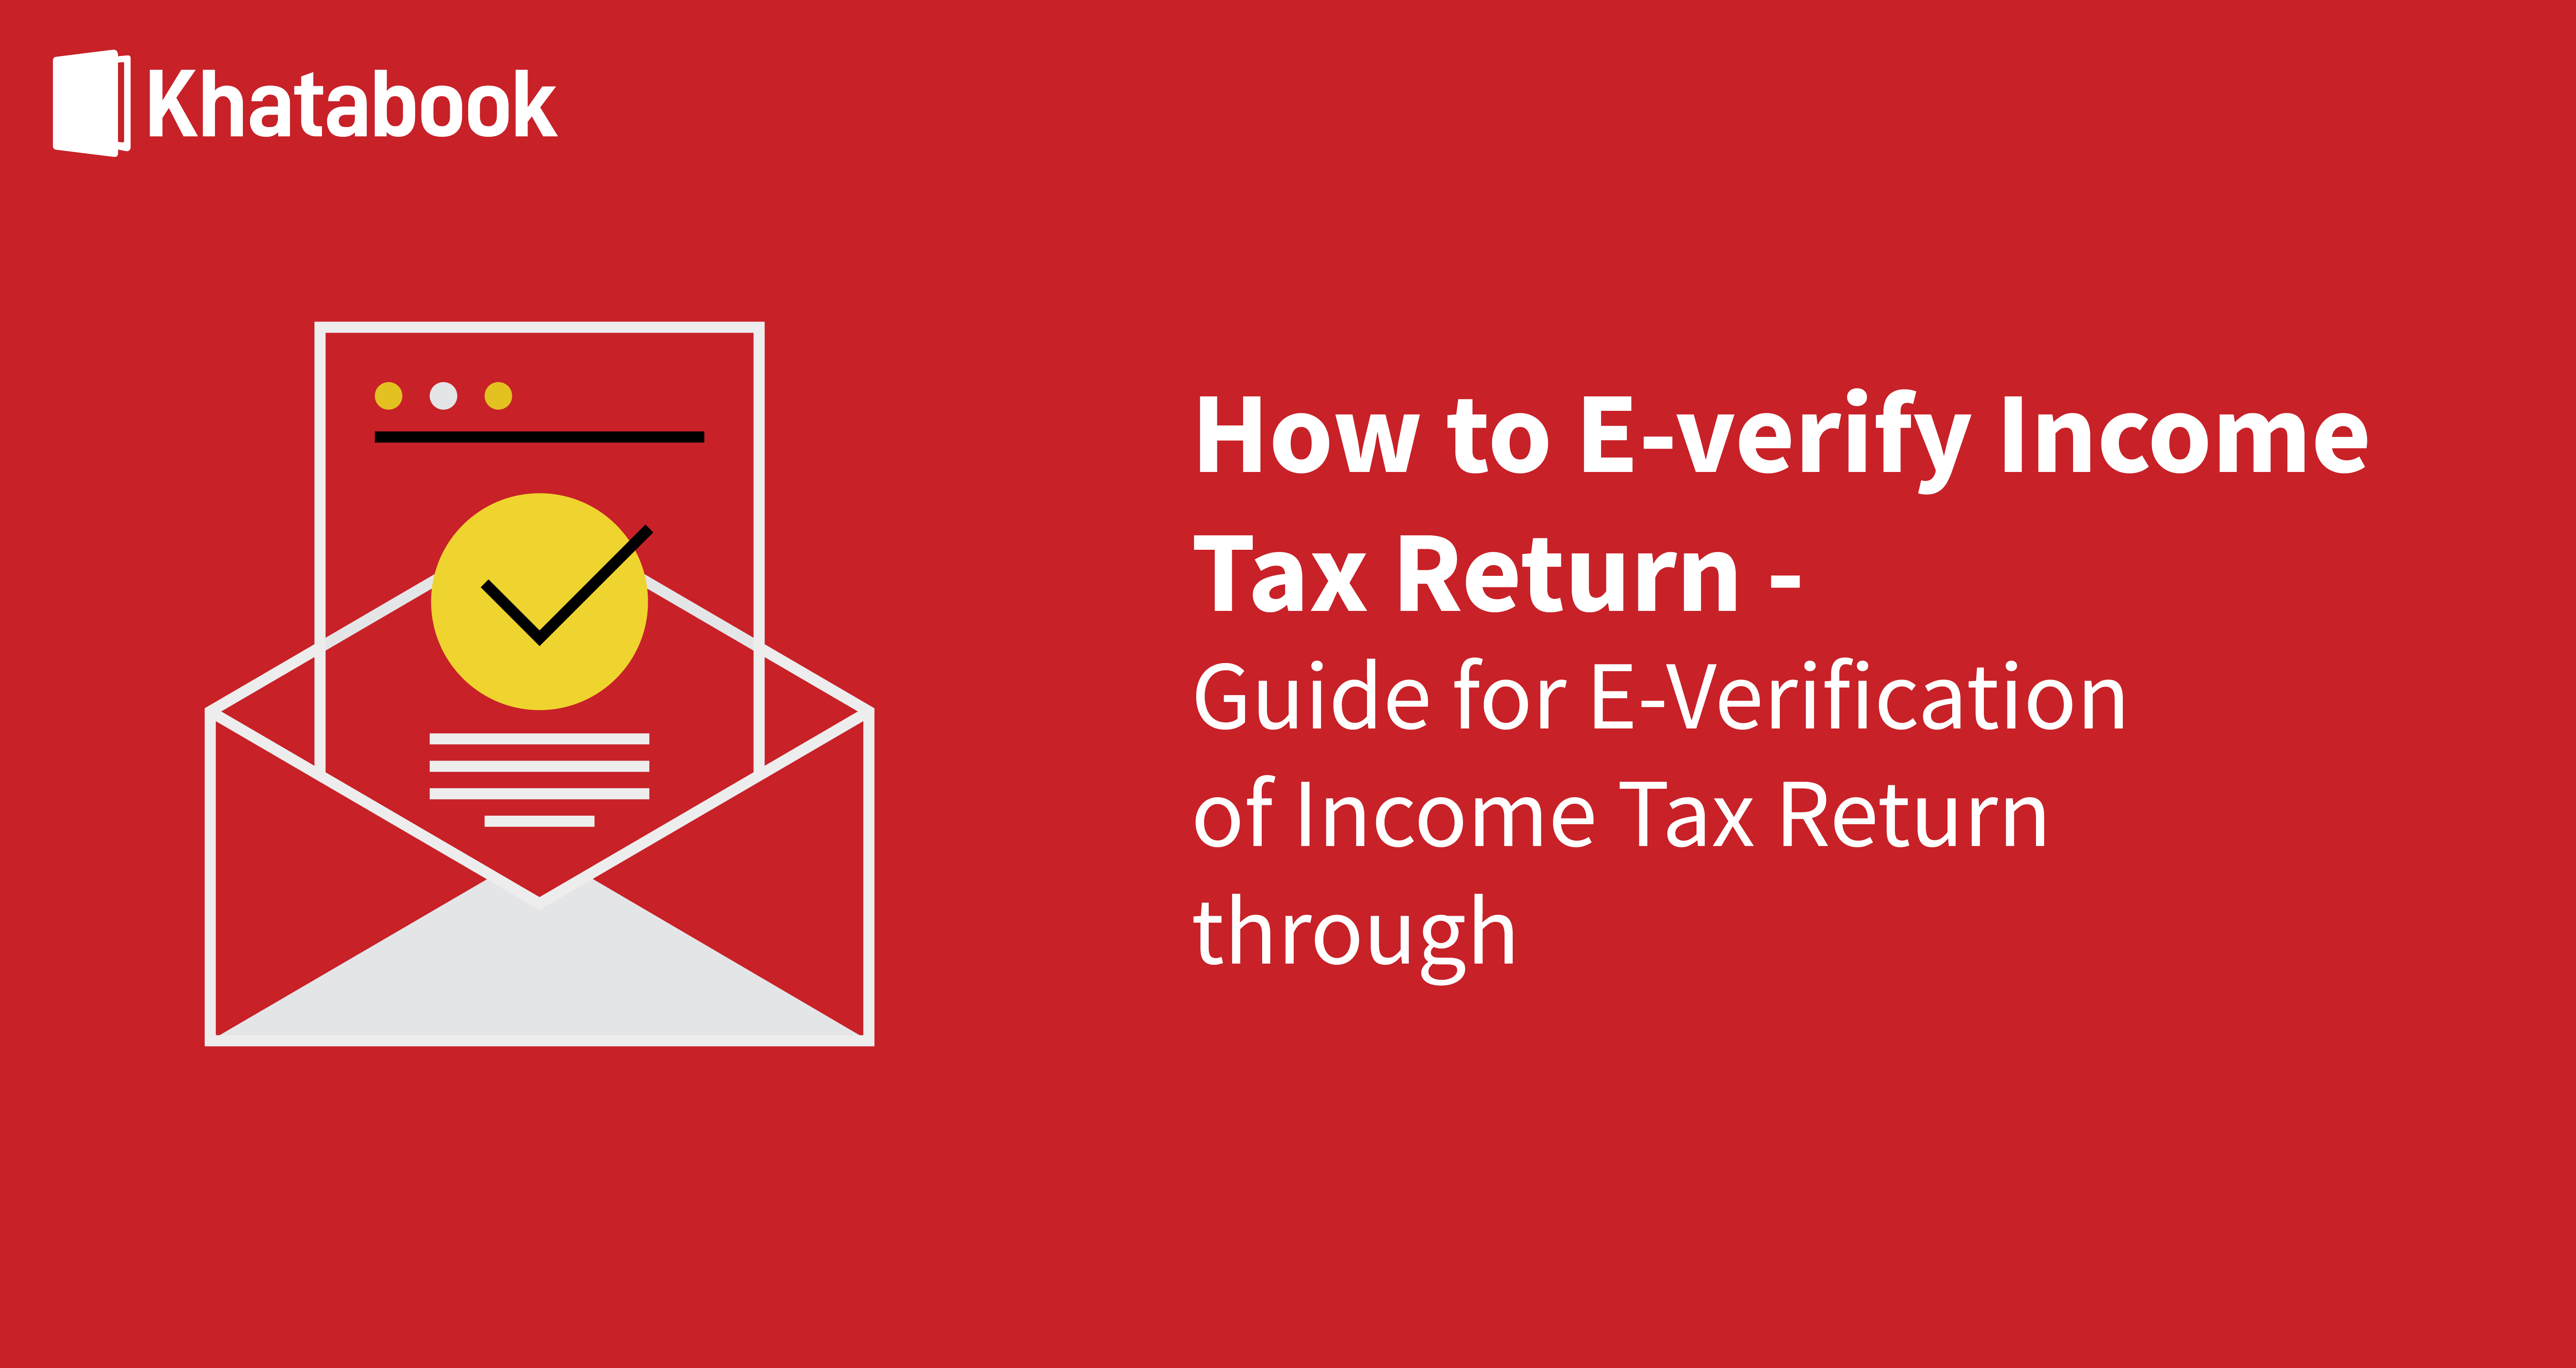 Step-by-Step Guide for E-Verifying Your Income Tax Return